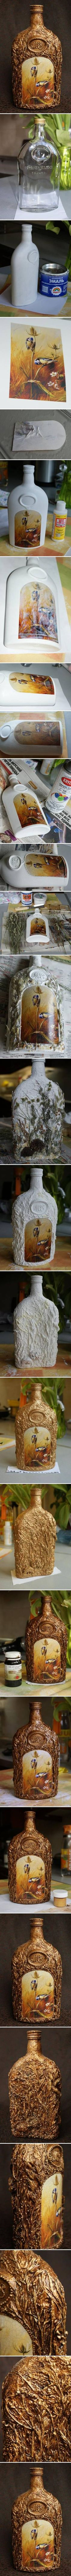 {DIY Decorative Glass Bottle}